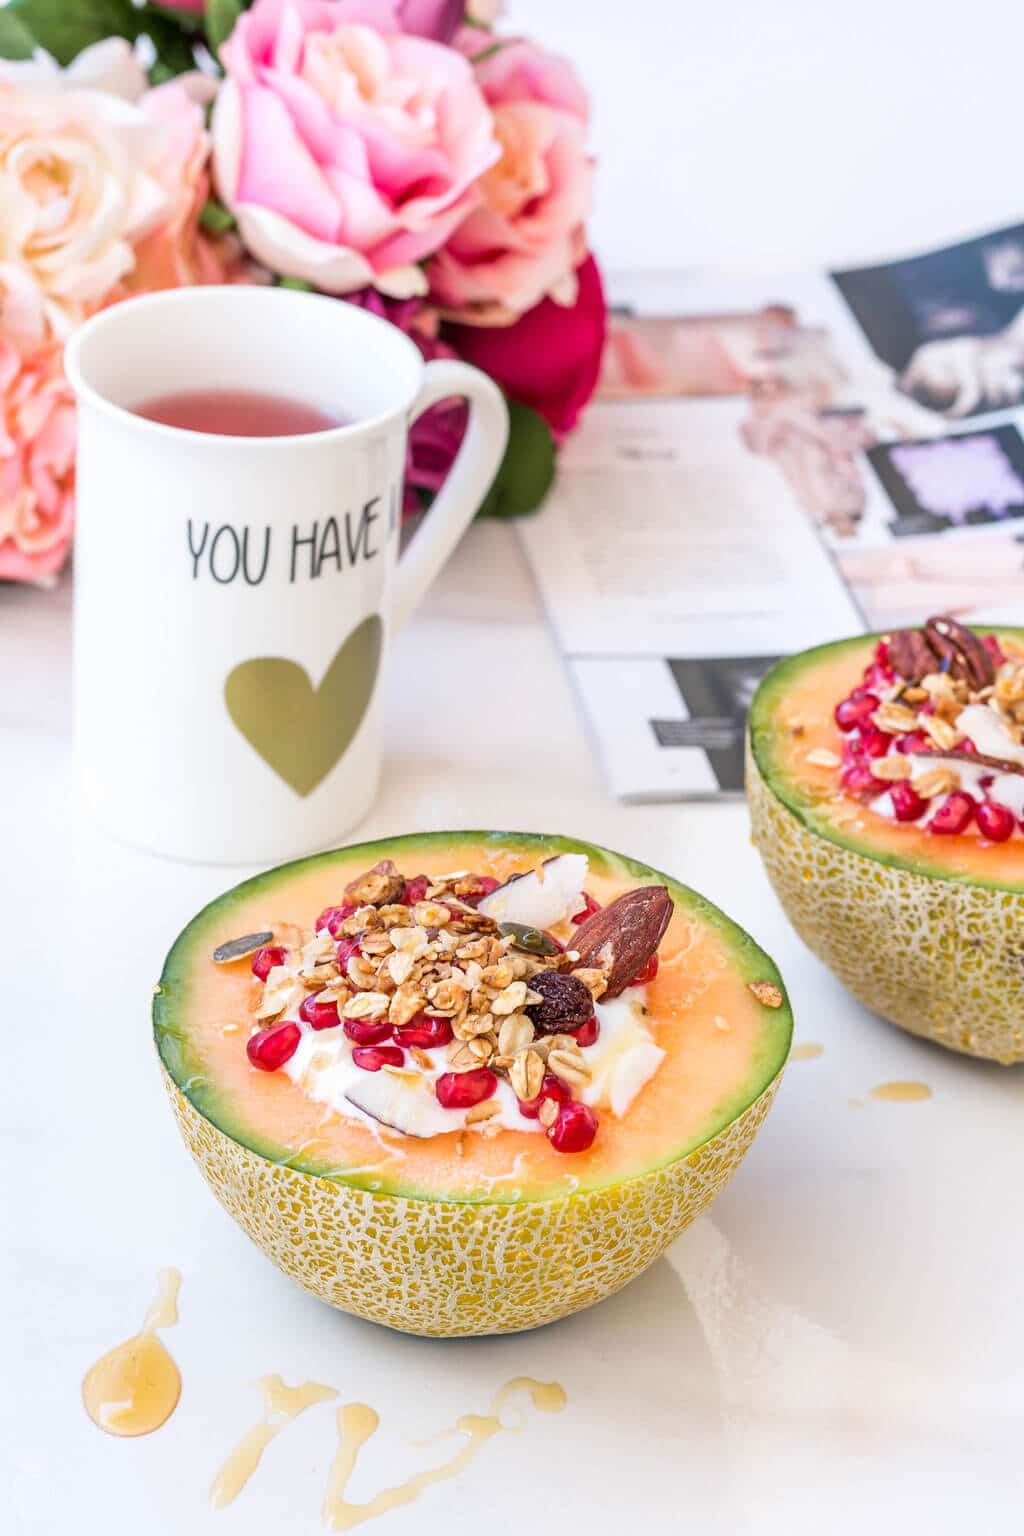 Healthy & super quick cantaloupe muesli breakfast bowls filled with low fat yogurt, homemade granola, pomegranate and a drizzle of honey. This all in one, easy to make breakfast is all you need in order to start the day on the right foot! Click through for the full recipe @ www.hedonistit.com